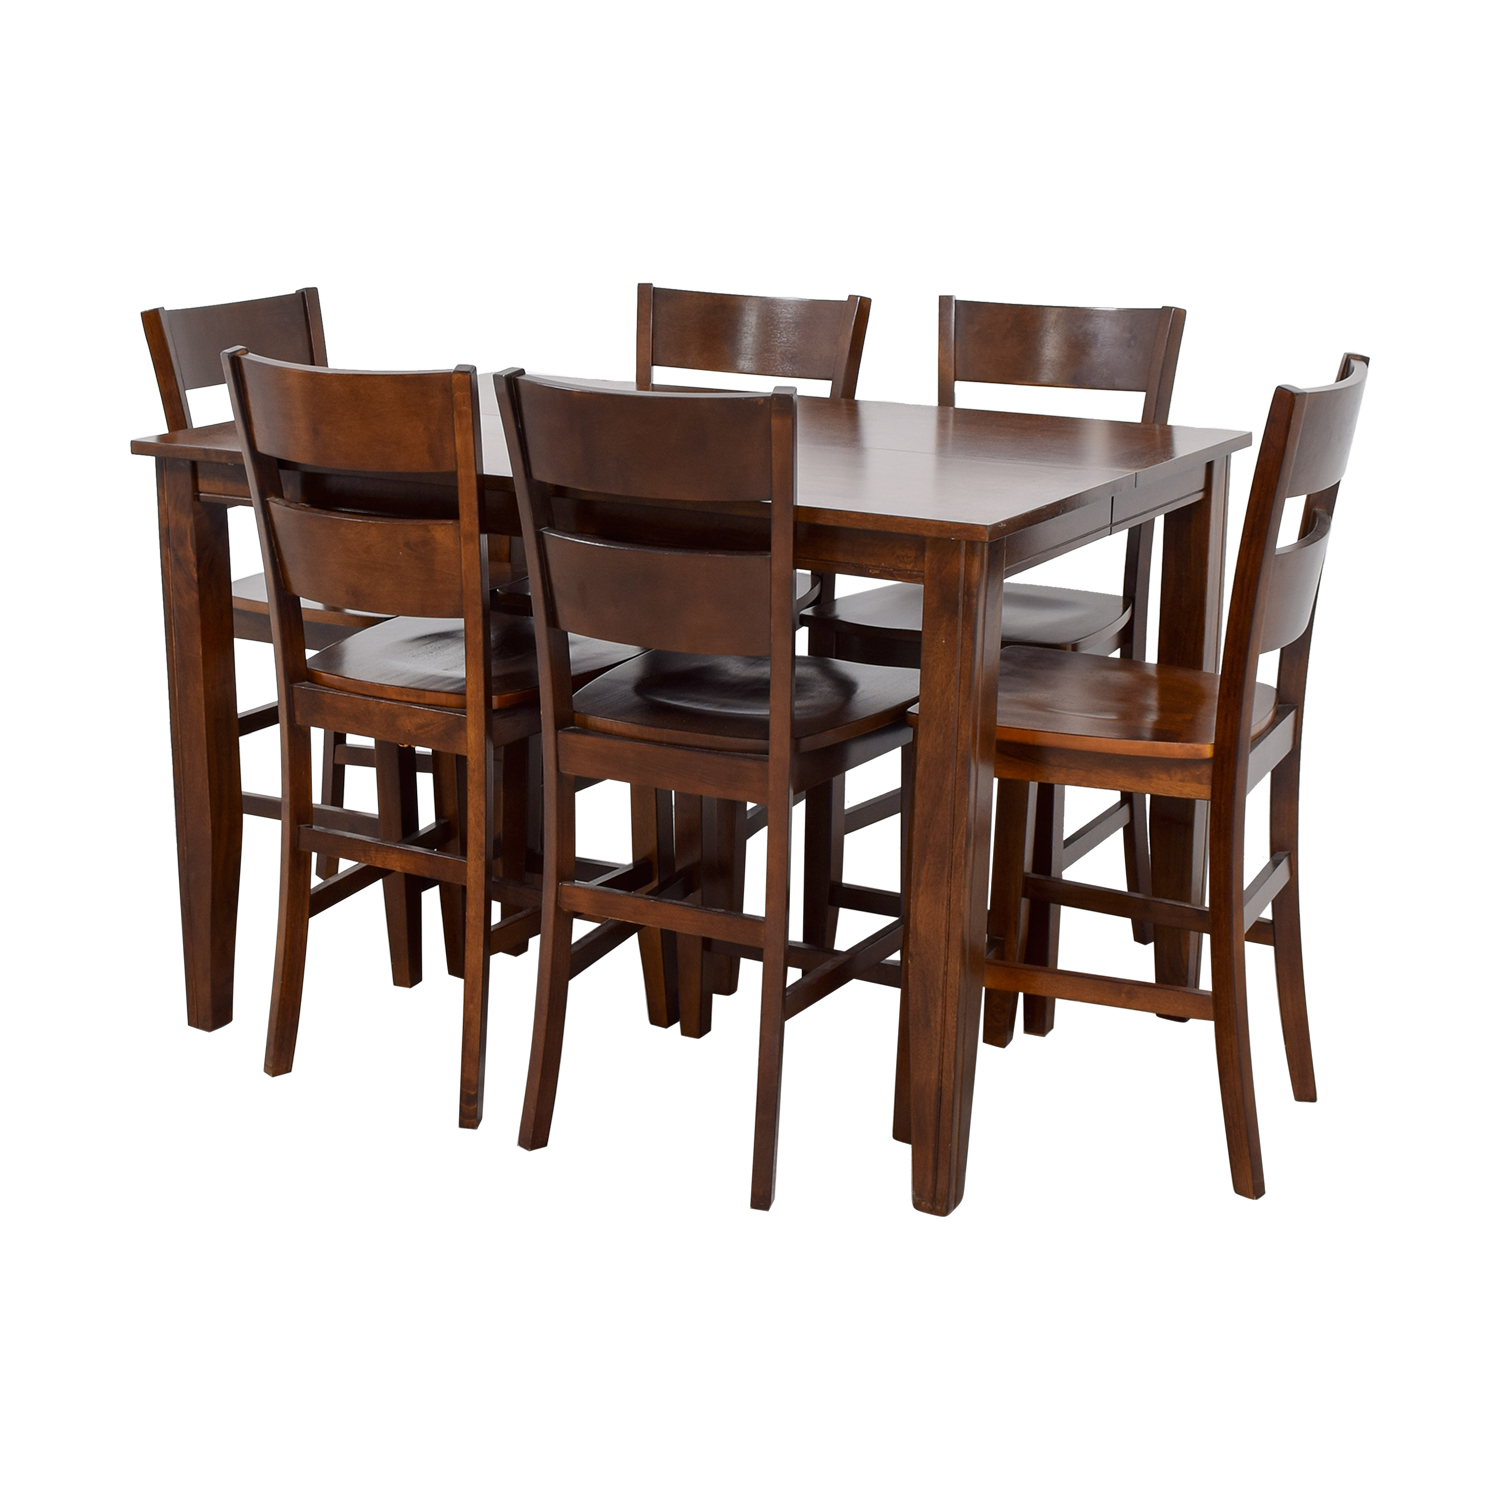 buy Bobs Furniture Bobs Furniture Wood Pub Dining Set online